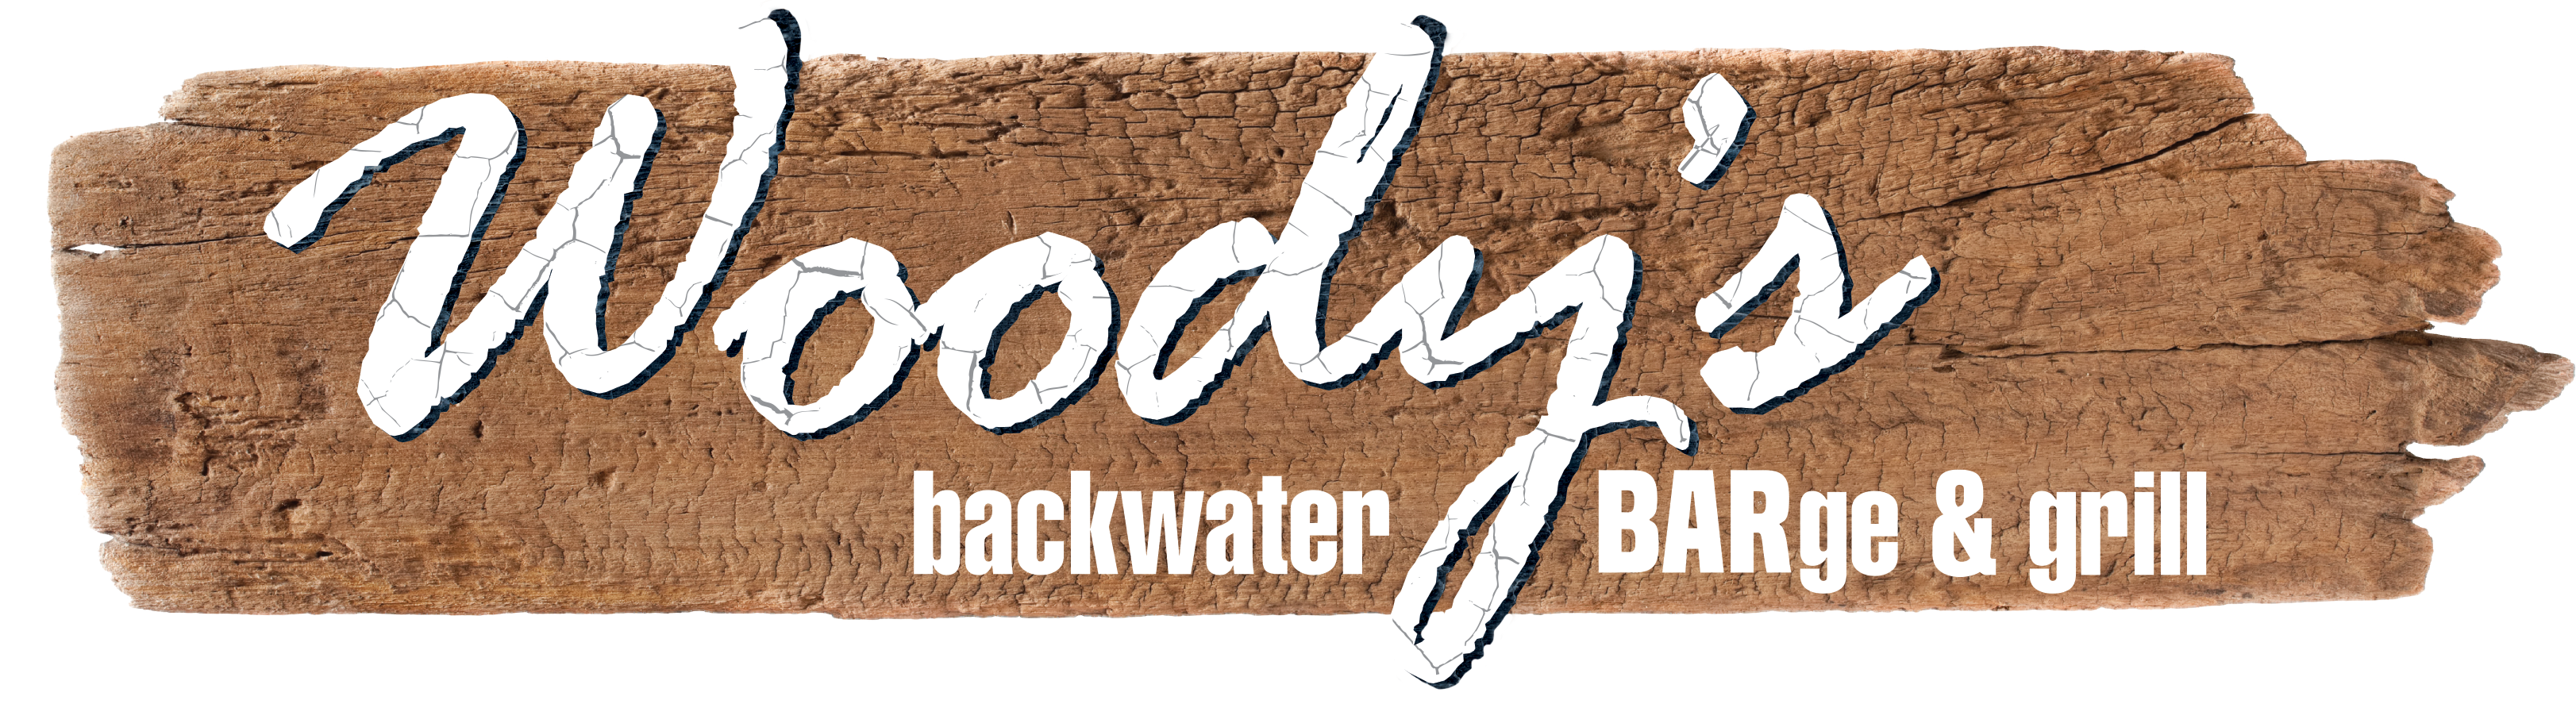 Woody's Backwater BARge & Grill